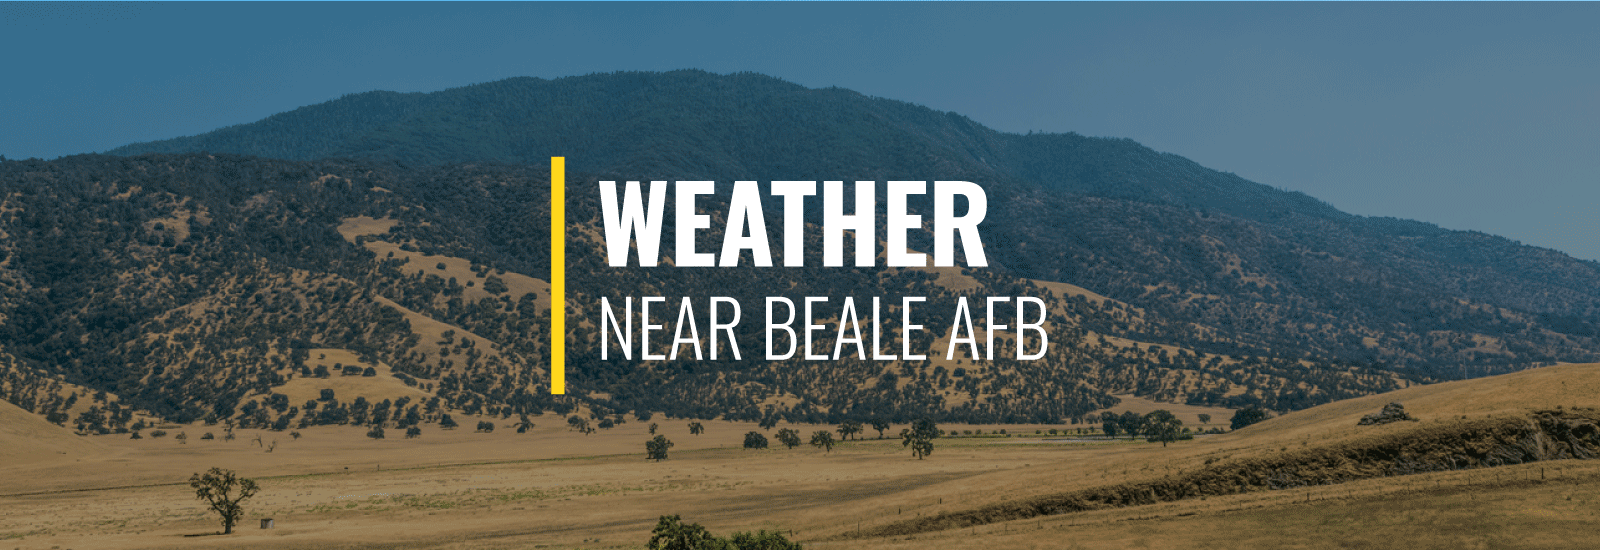 Beale AFB Weather